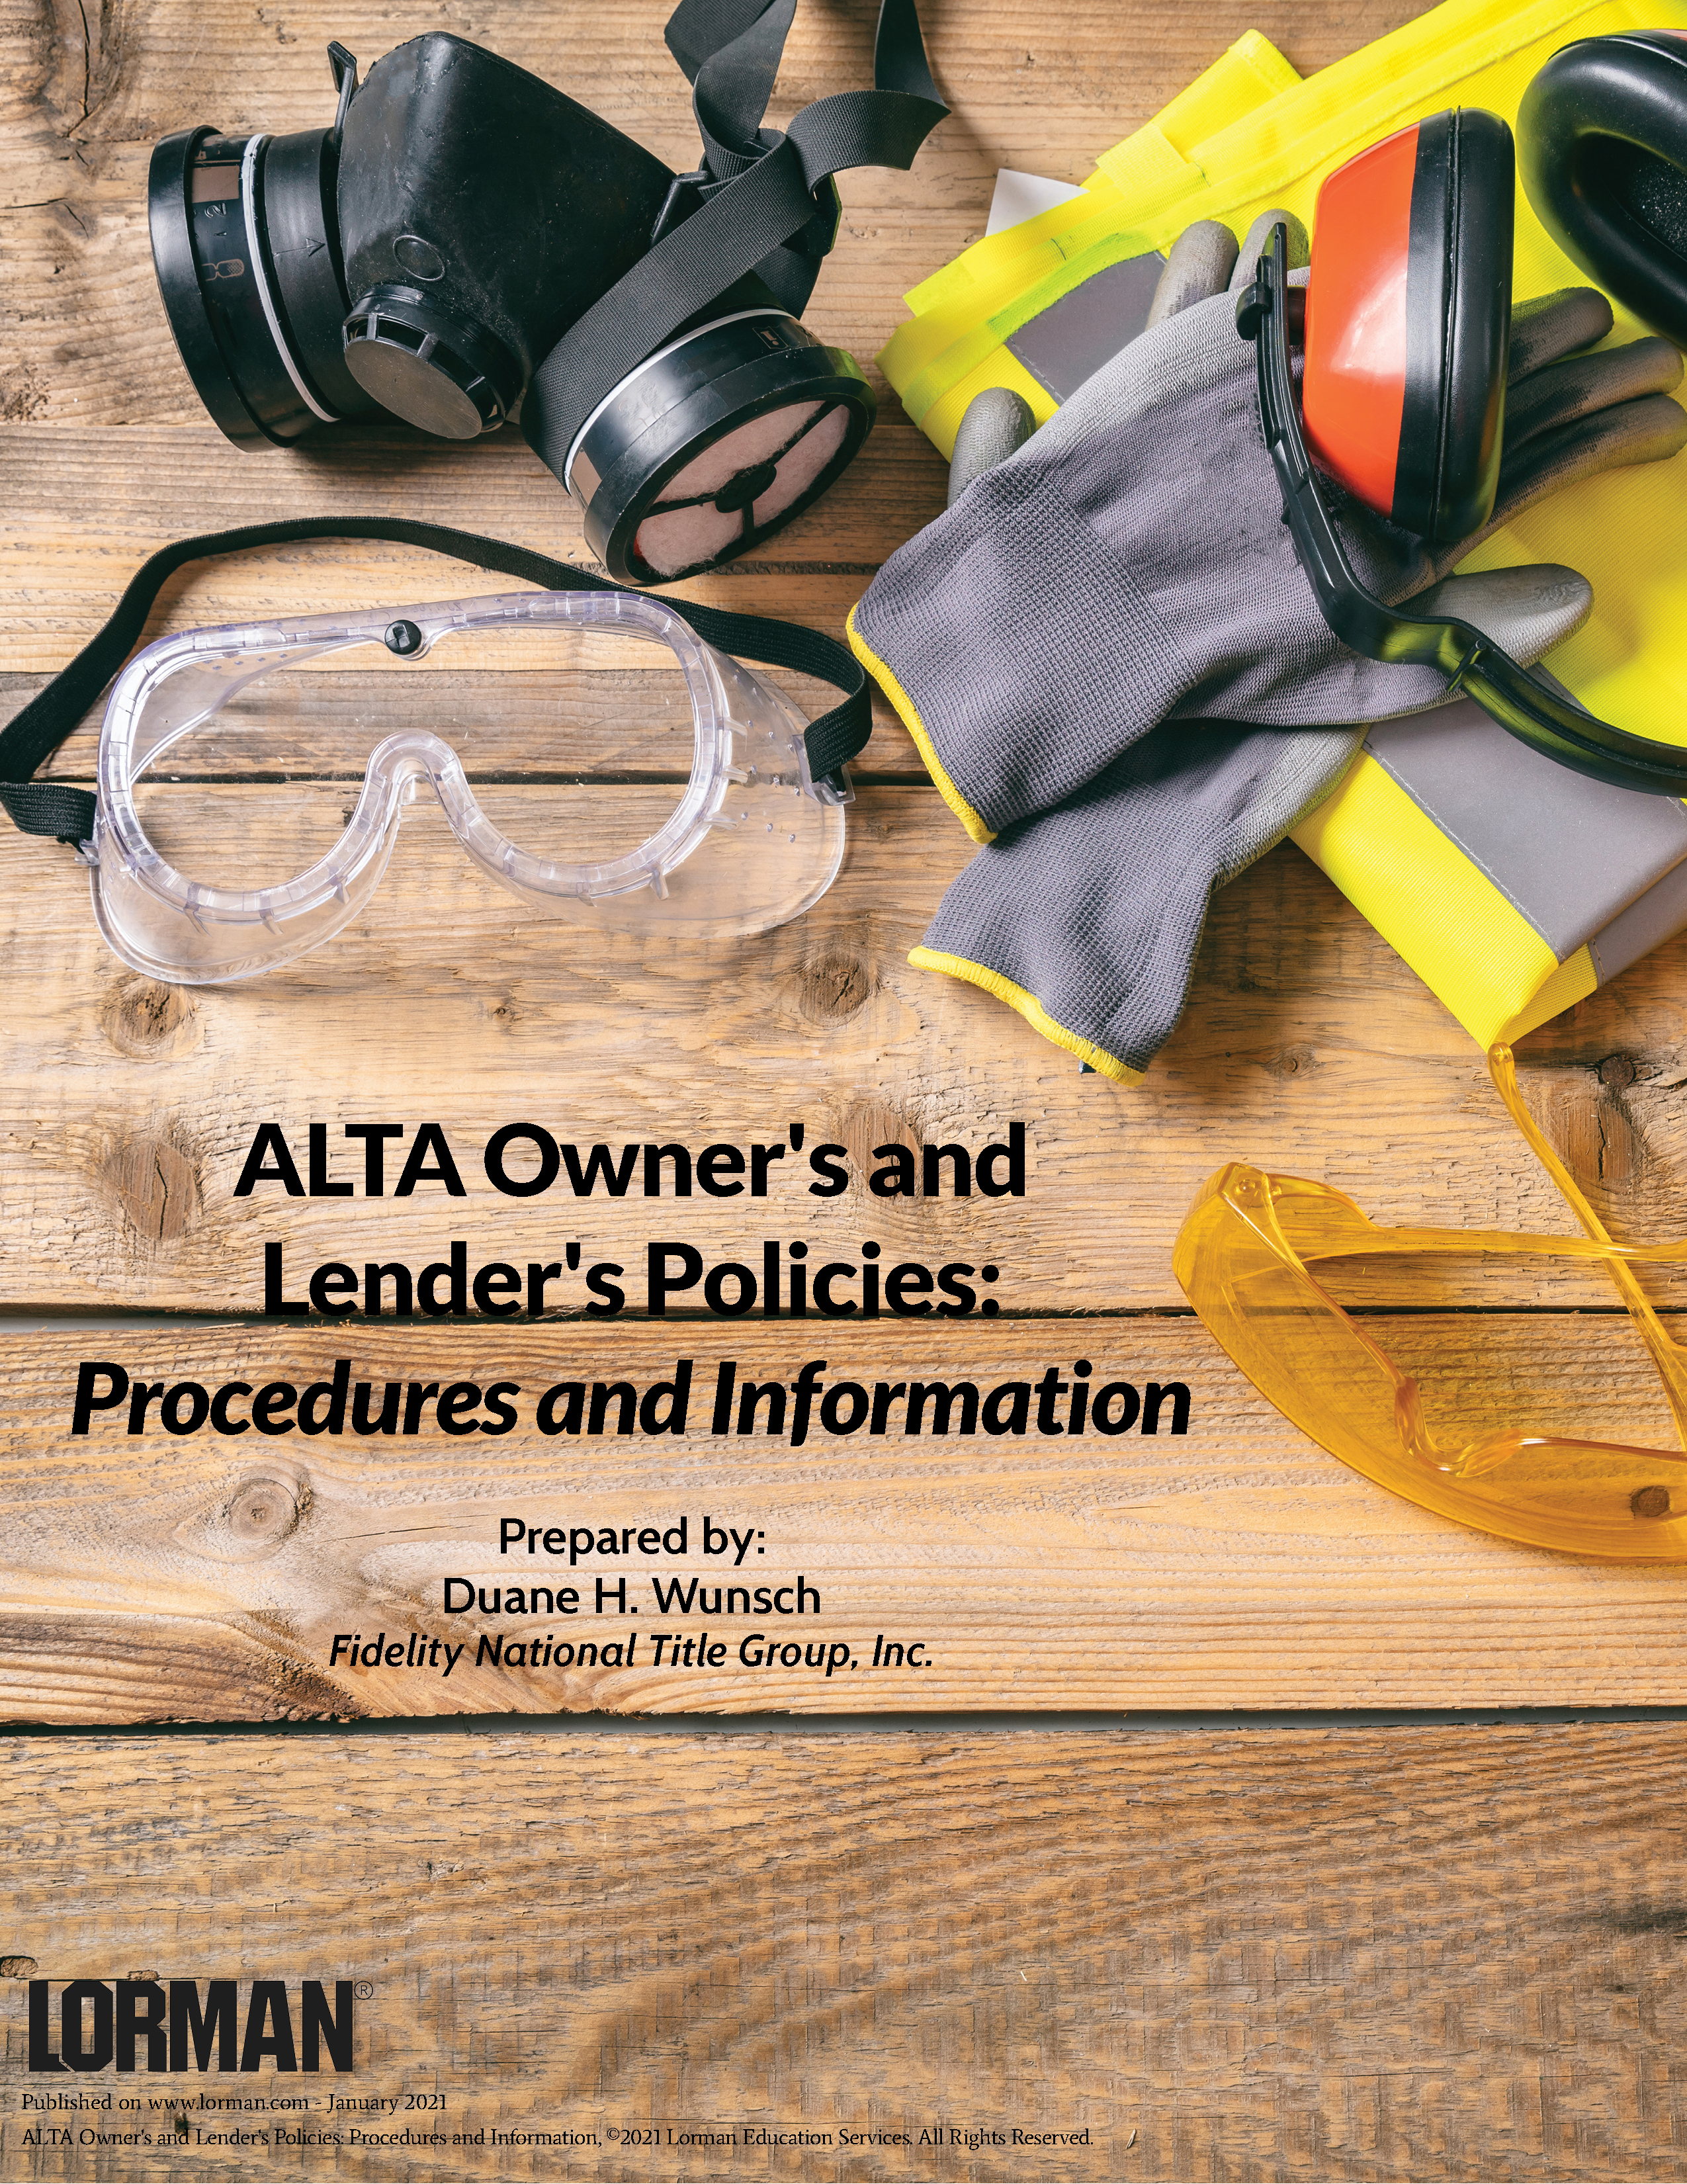 ALTA Owner's and Lender's Policies: Procedures and Information